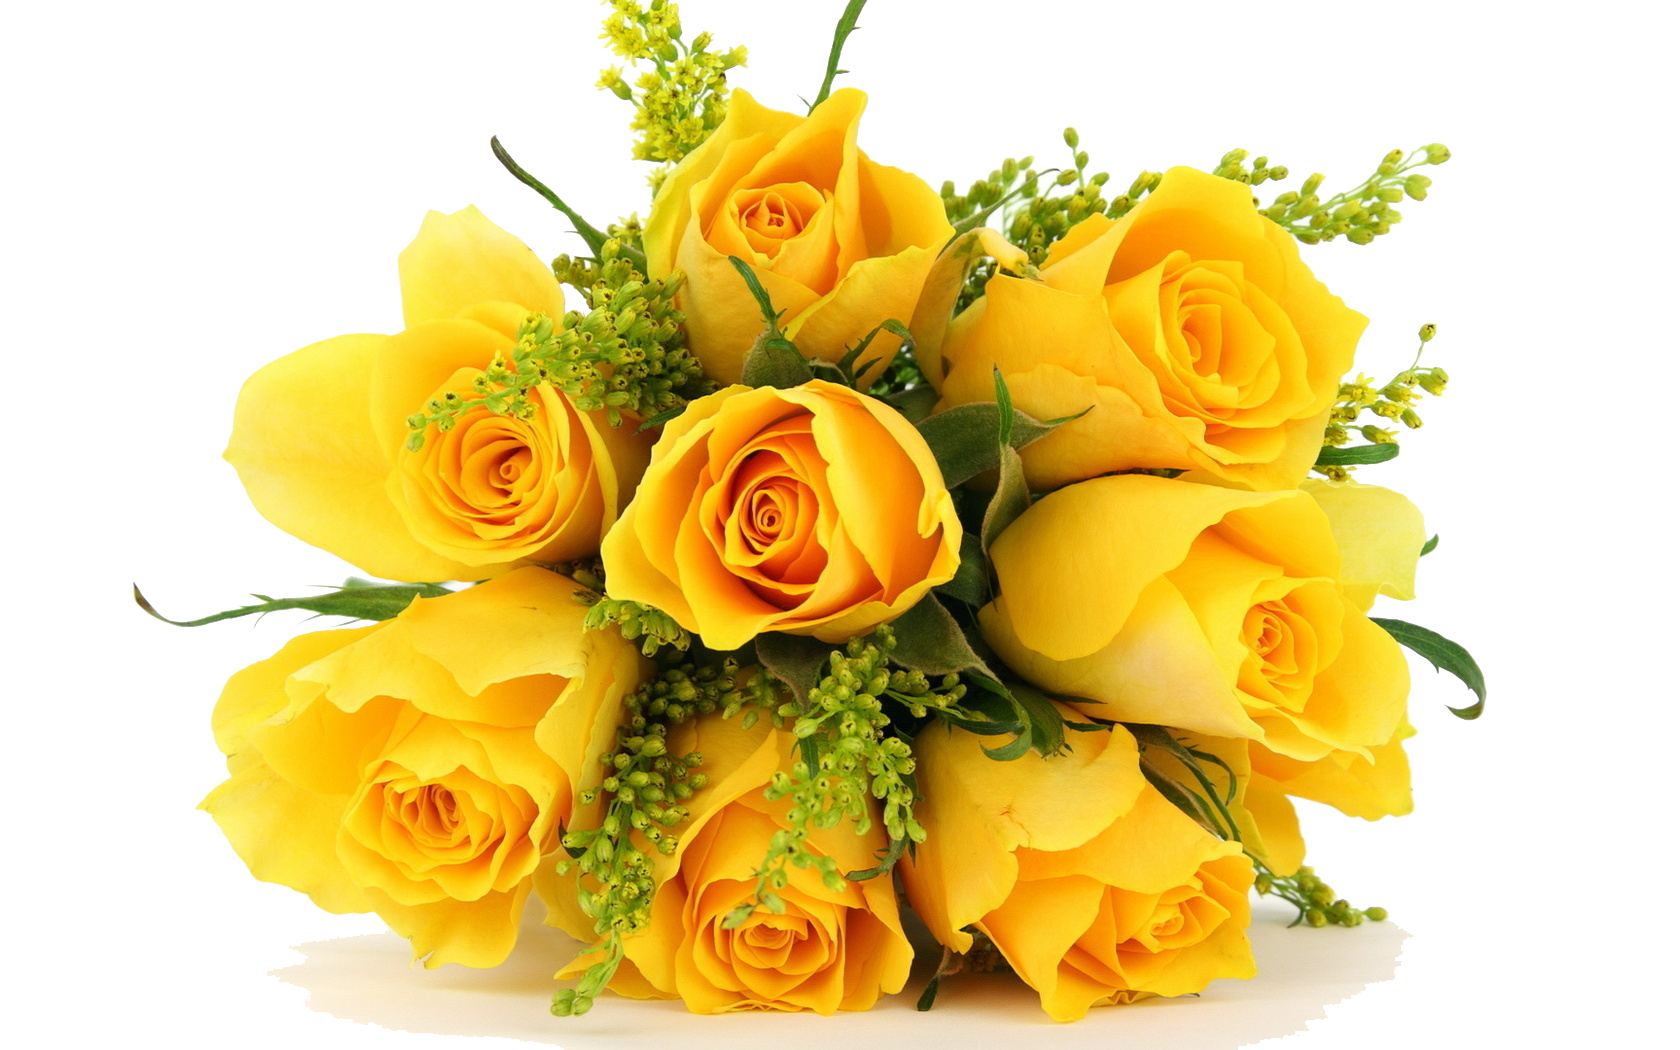 Flower image png. Yellow flowers bouquet photos